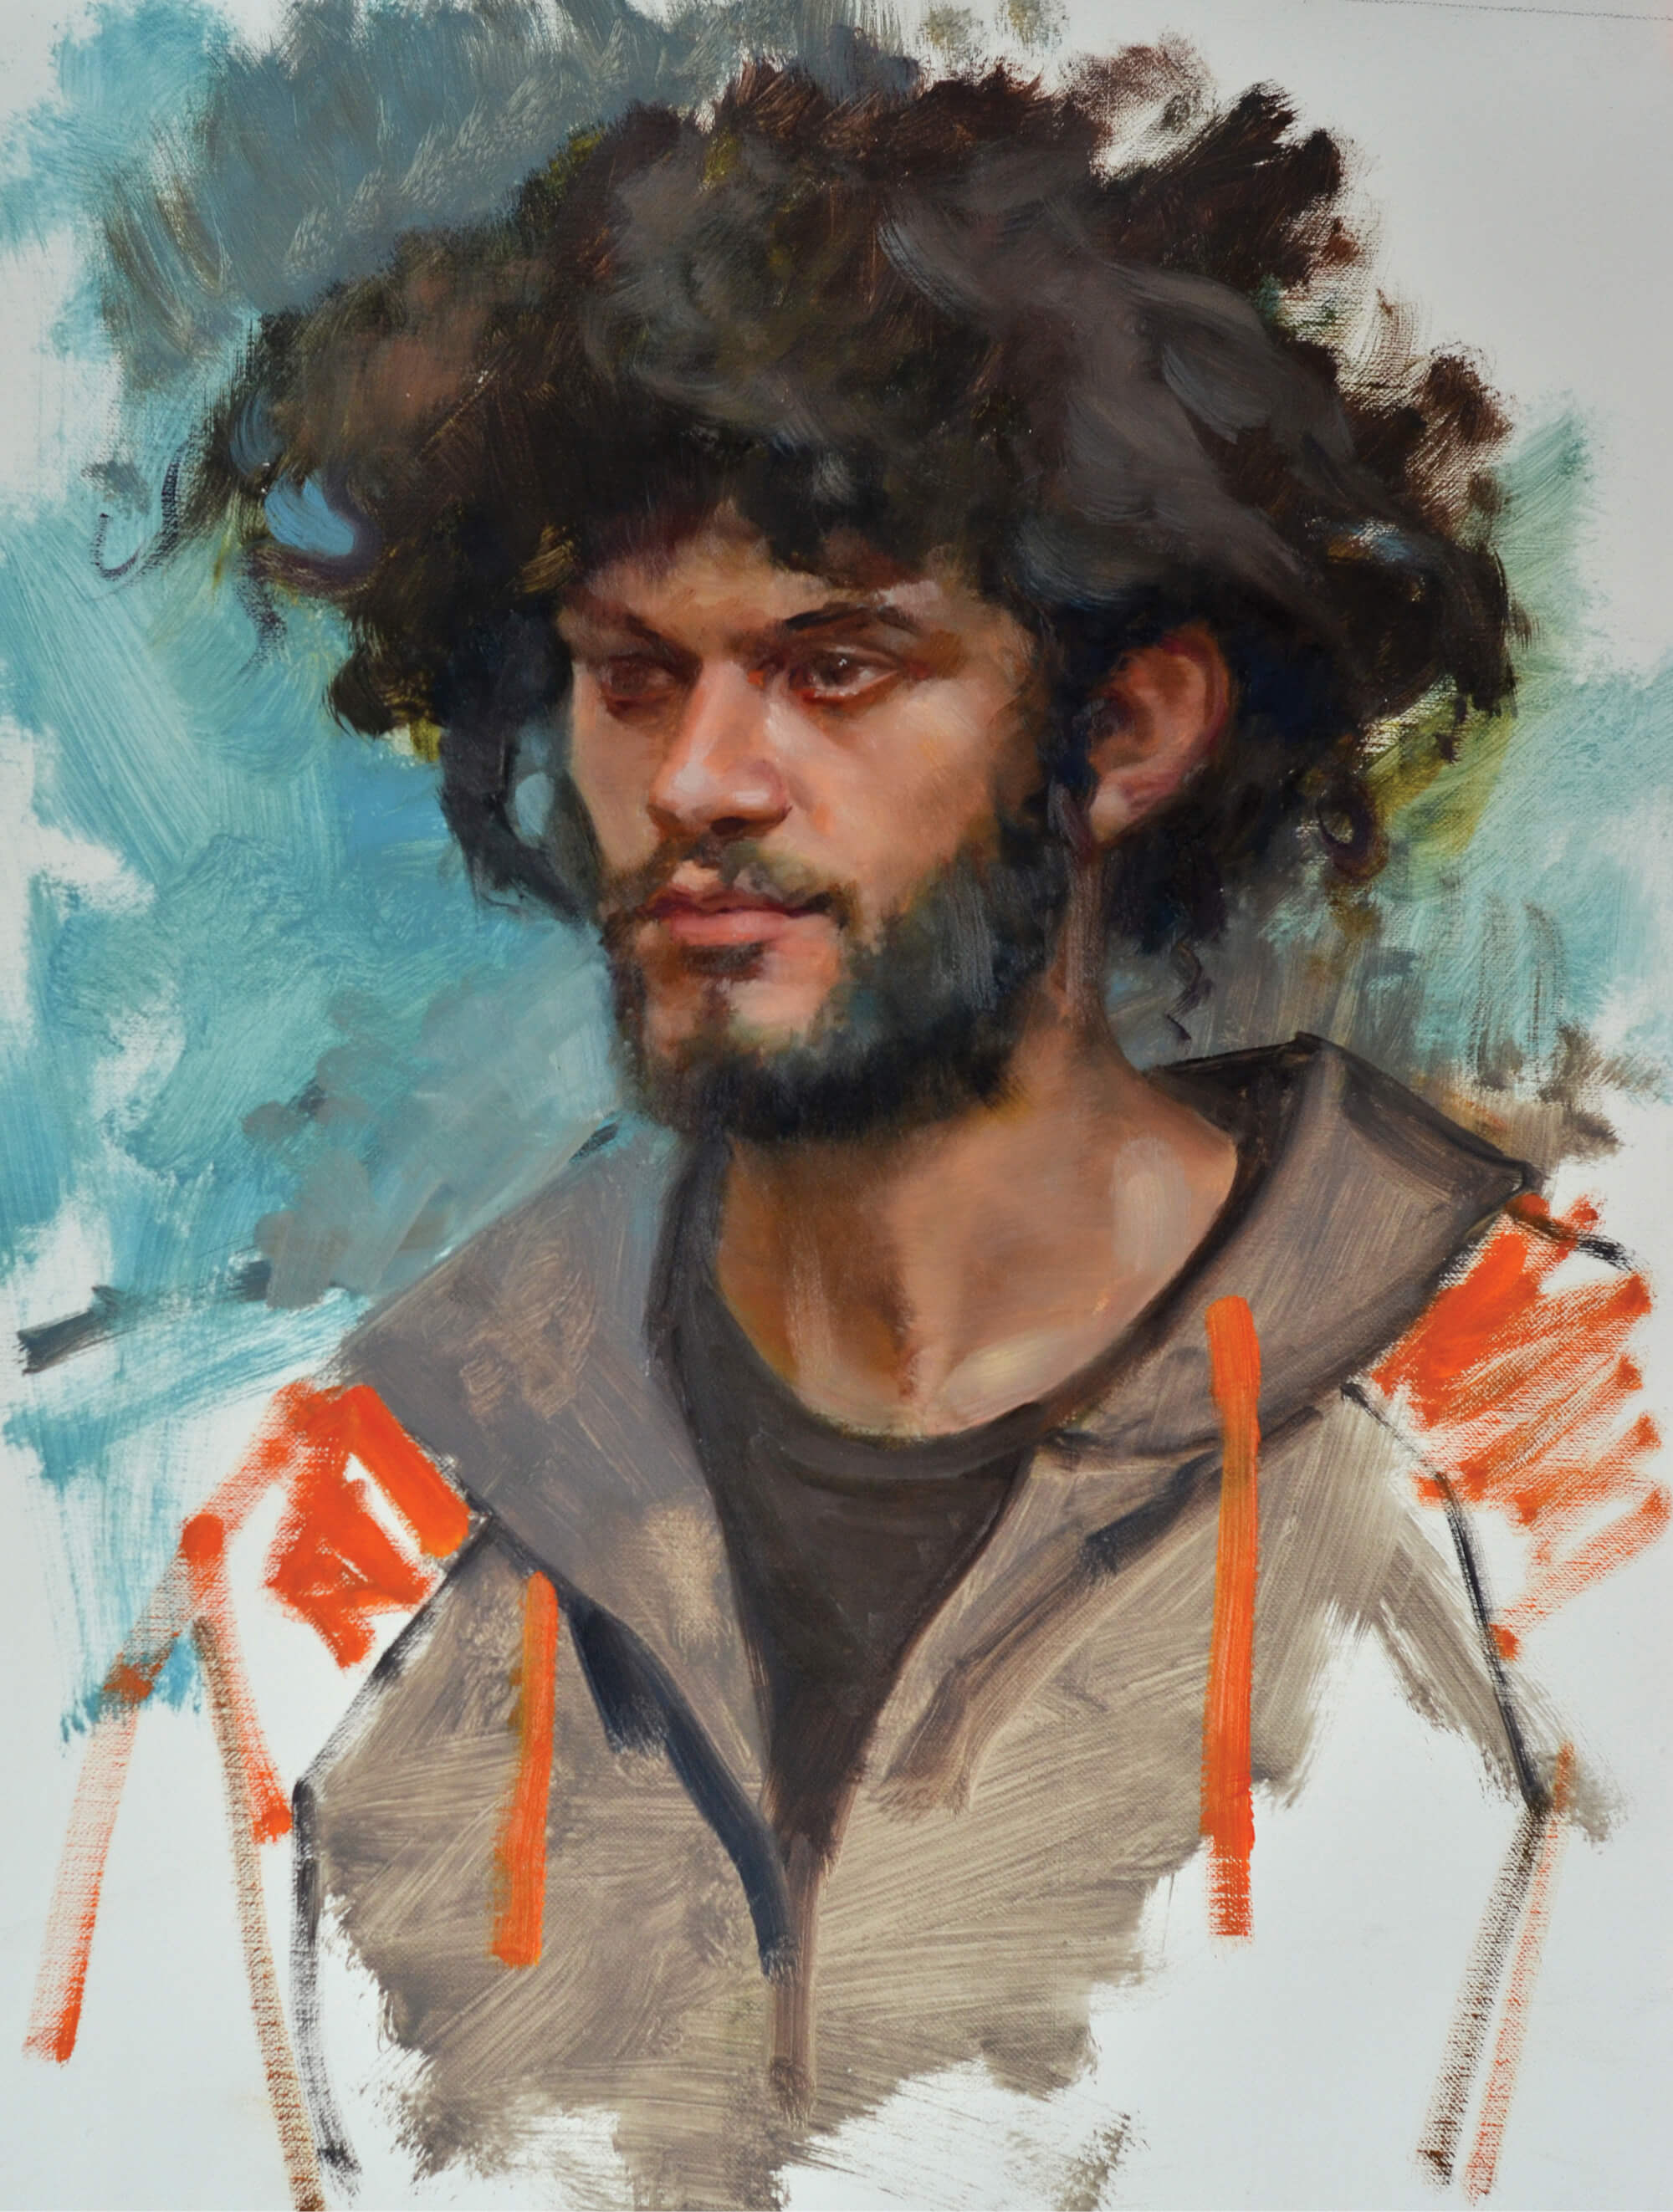 Oil portrait of a young man with free spirited afro-like hair, mustache and full beard wearing a gray hoody with orange ties and shoulders on a teal blue background